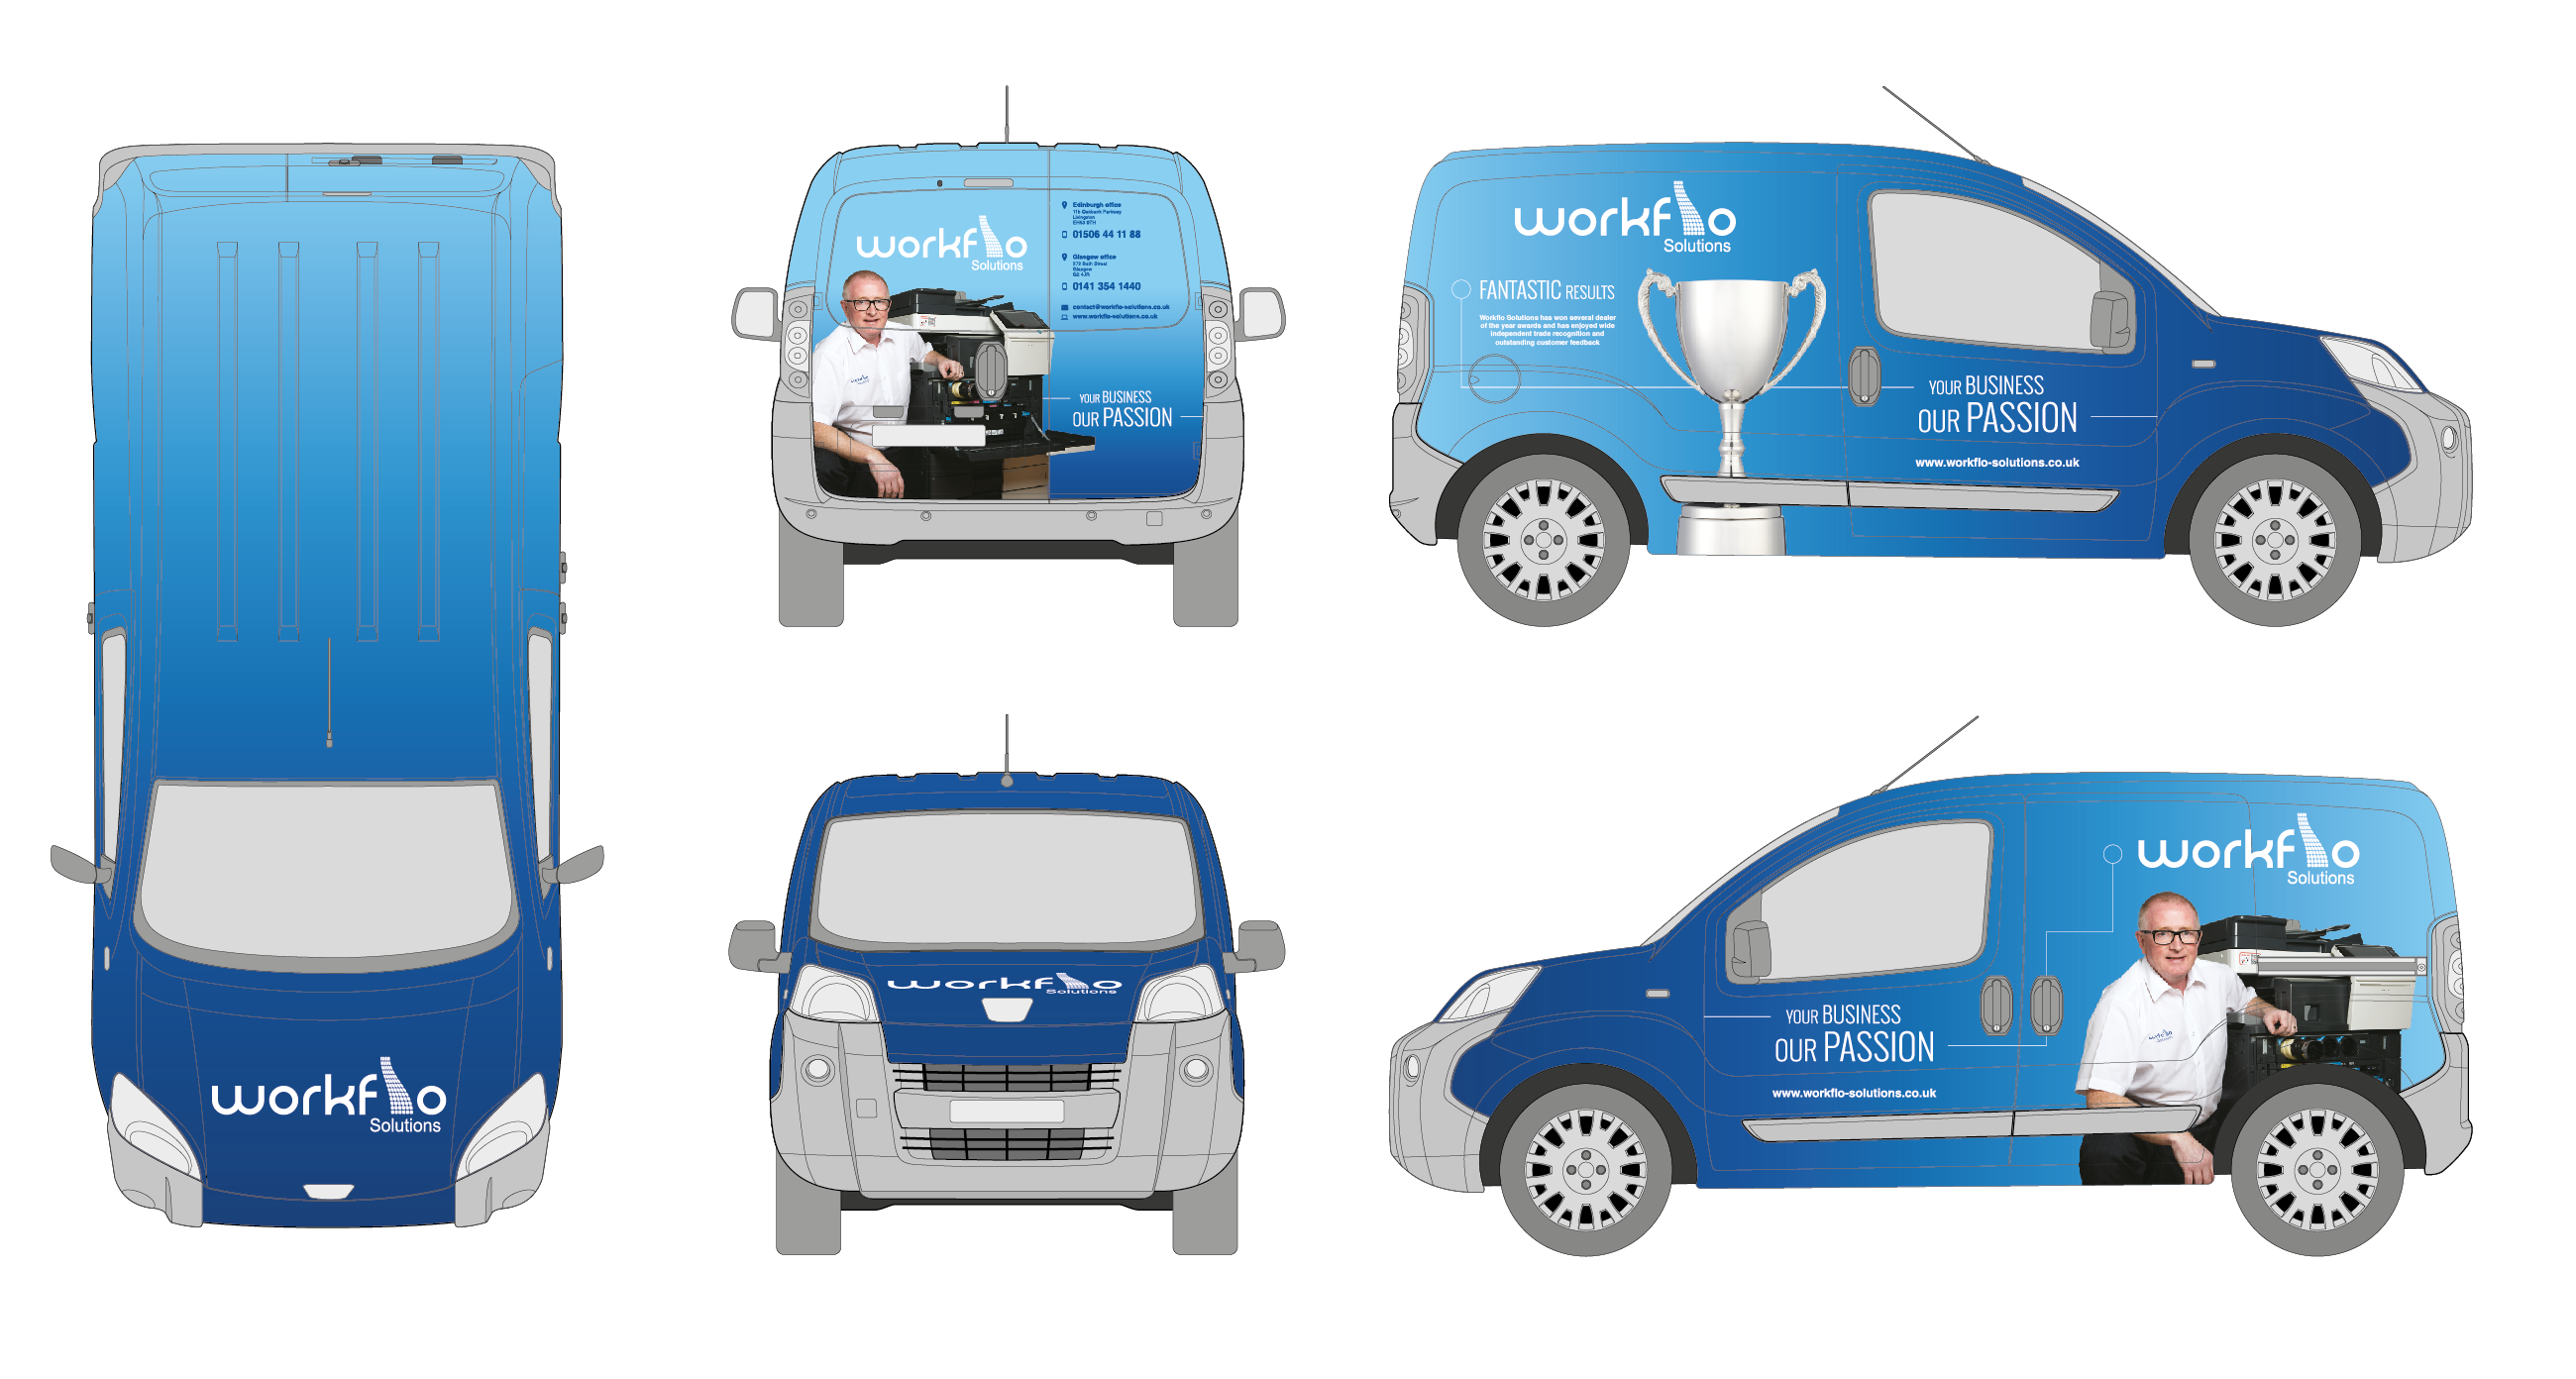 WorkFlo Vehicle Design